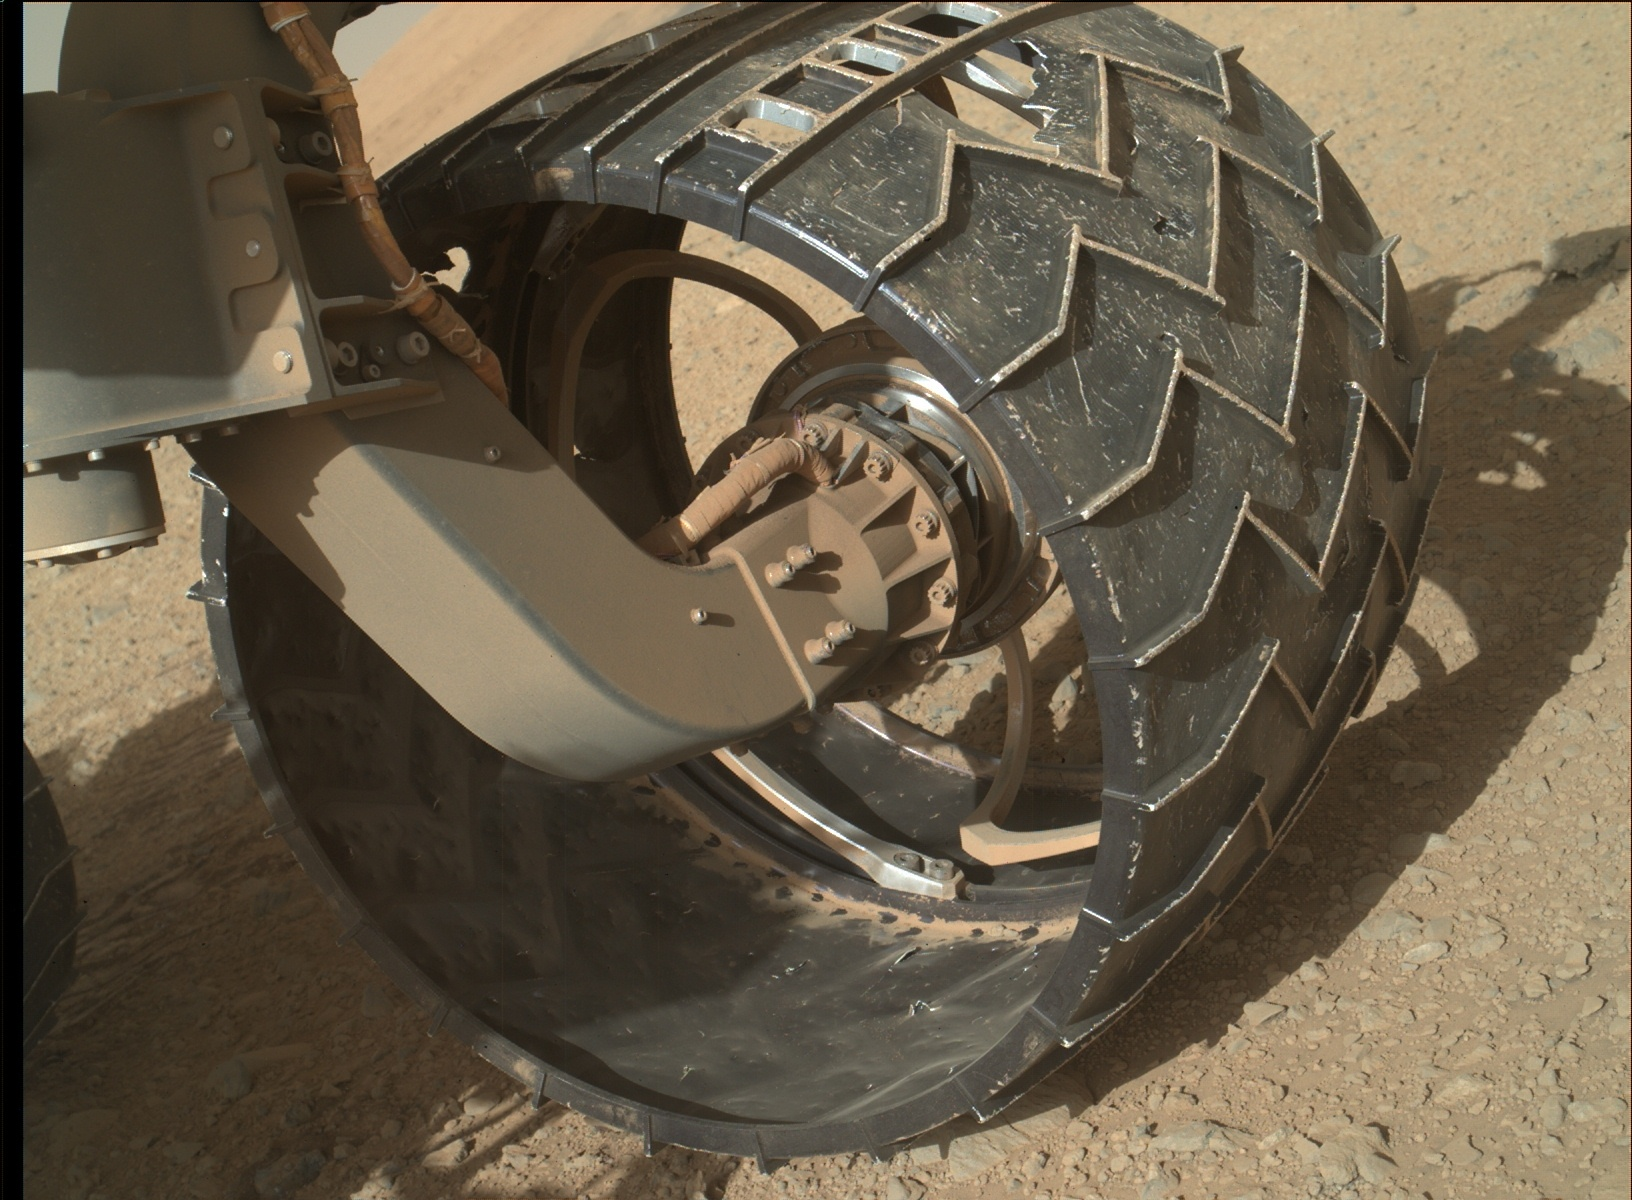 Nasa's Mars rover Curiosity acquired this image using its Mars Hand Lens Imager (MAHLI) on Sol 640